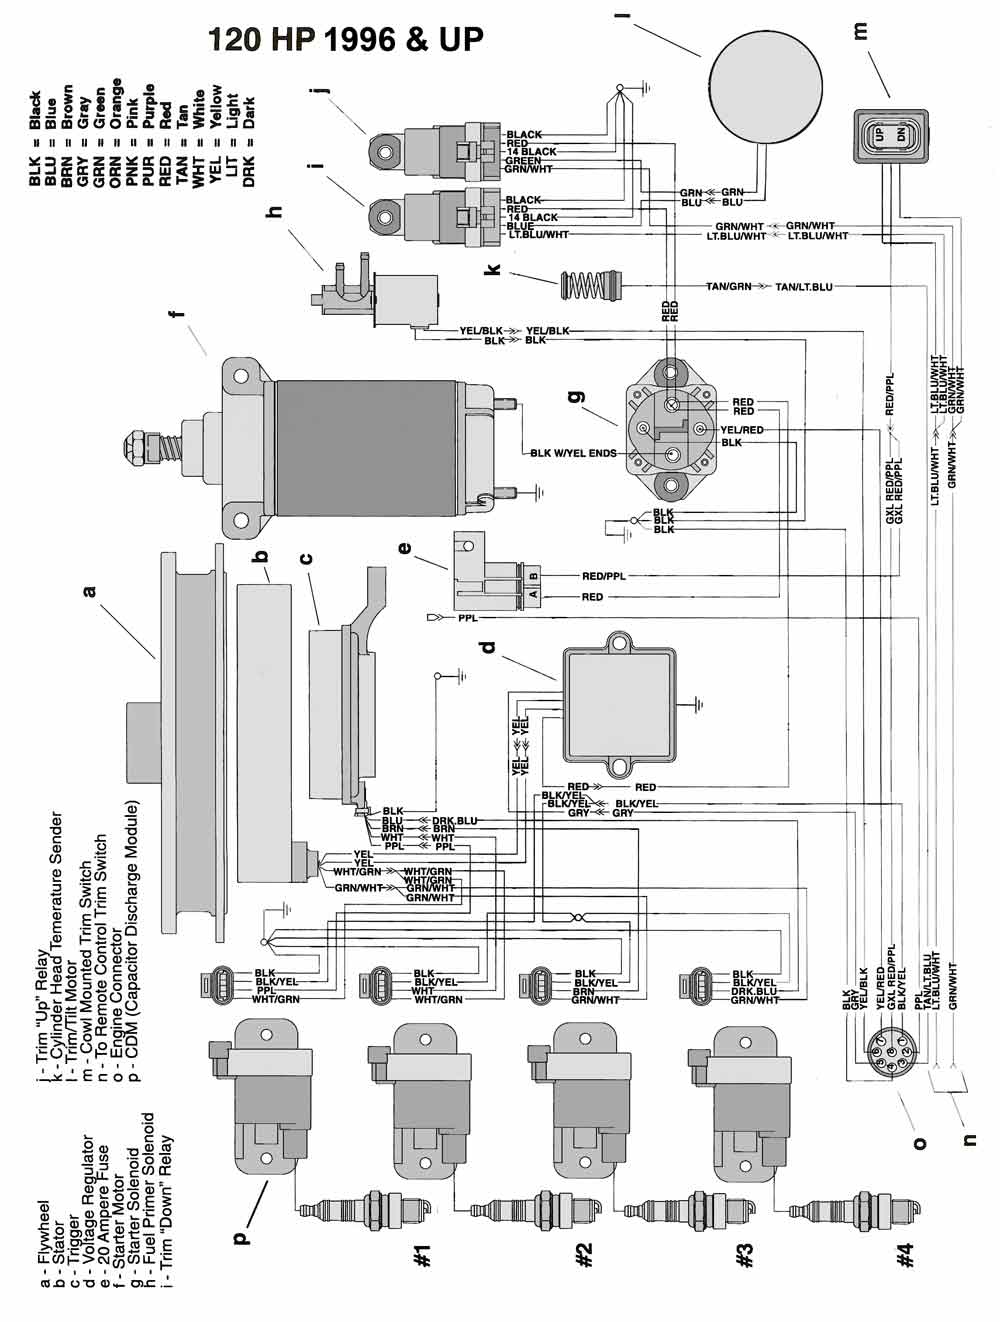 Mastertech Marine Chrysler & Force Outboard Wiring Diagrams 90 Mercury Outboard  Wiring Diagram 85 Hp Force Outboard Wiring Diagram